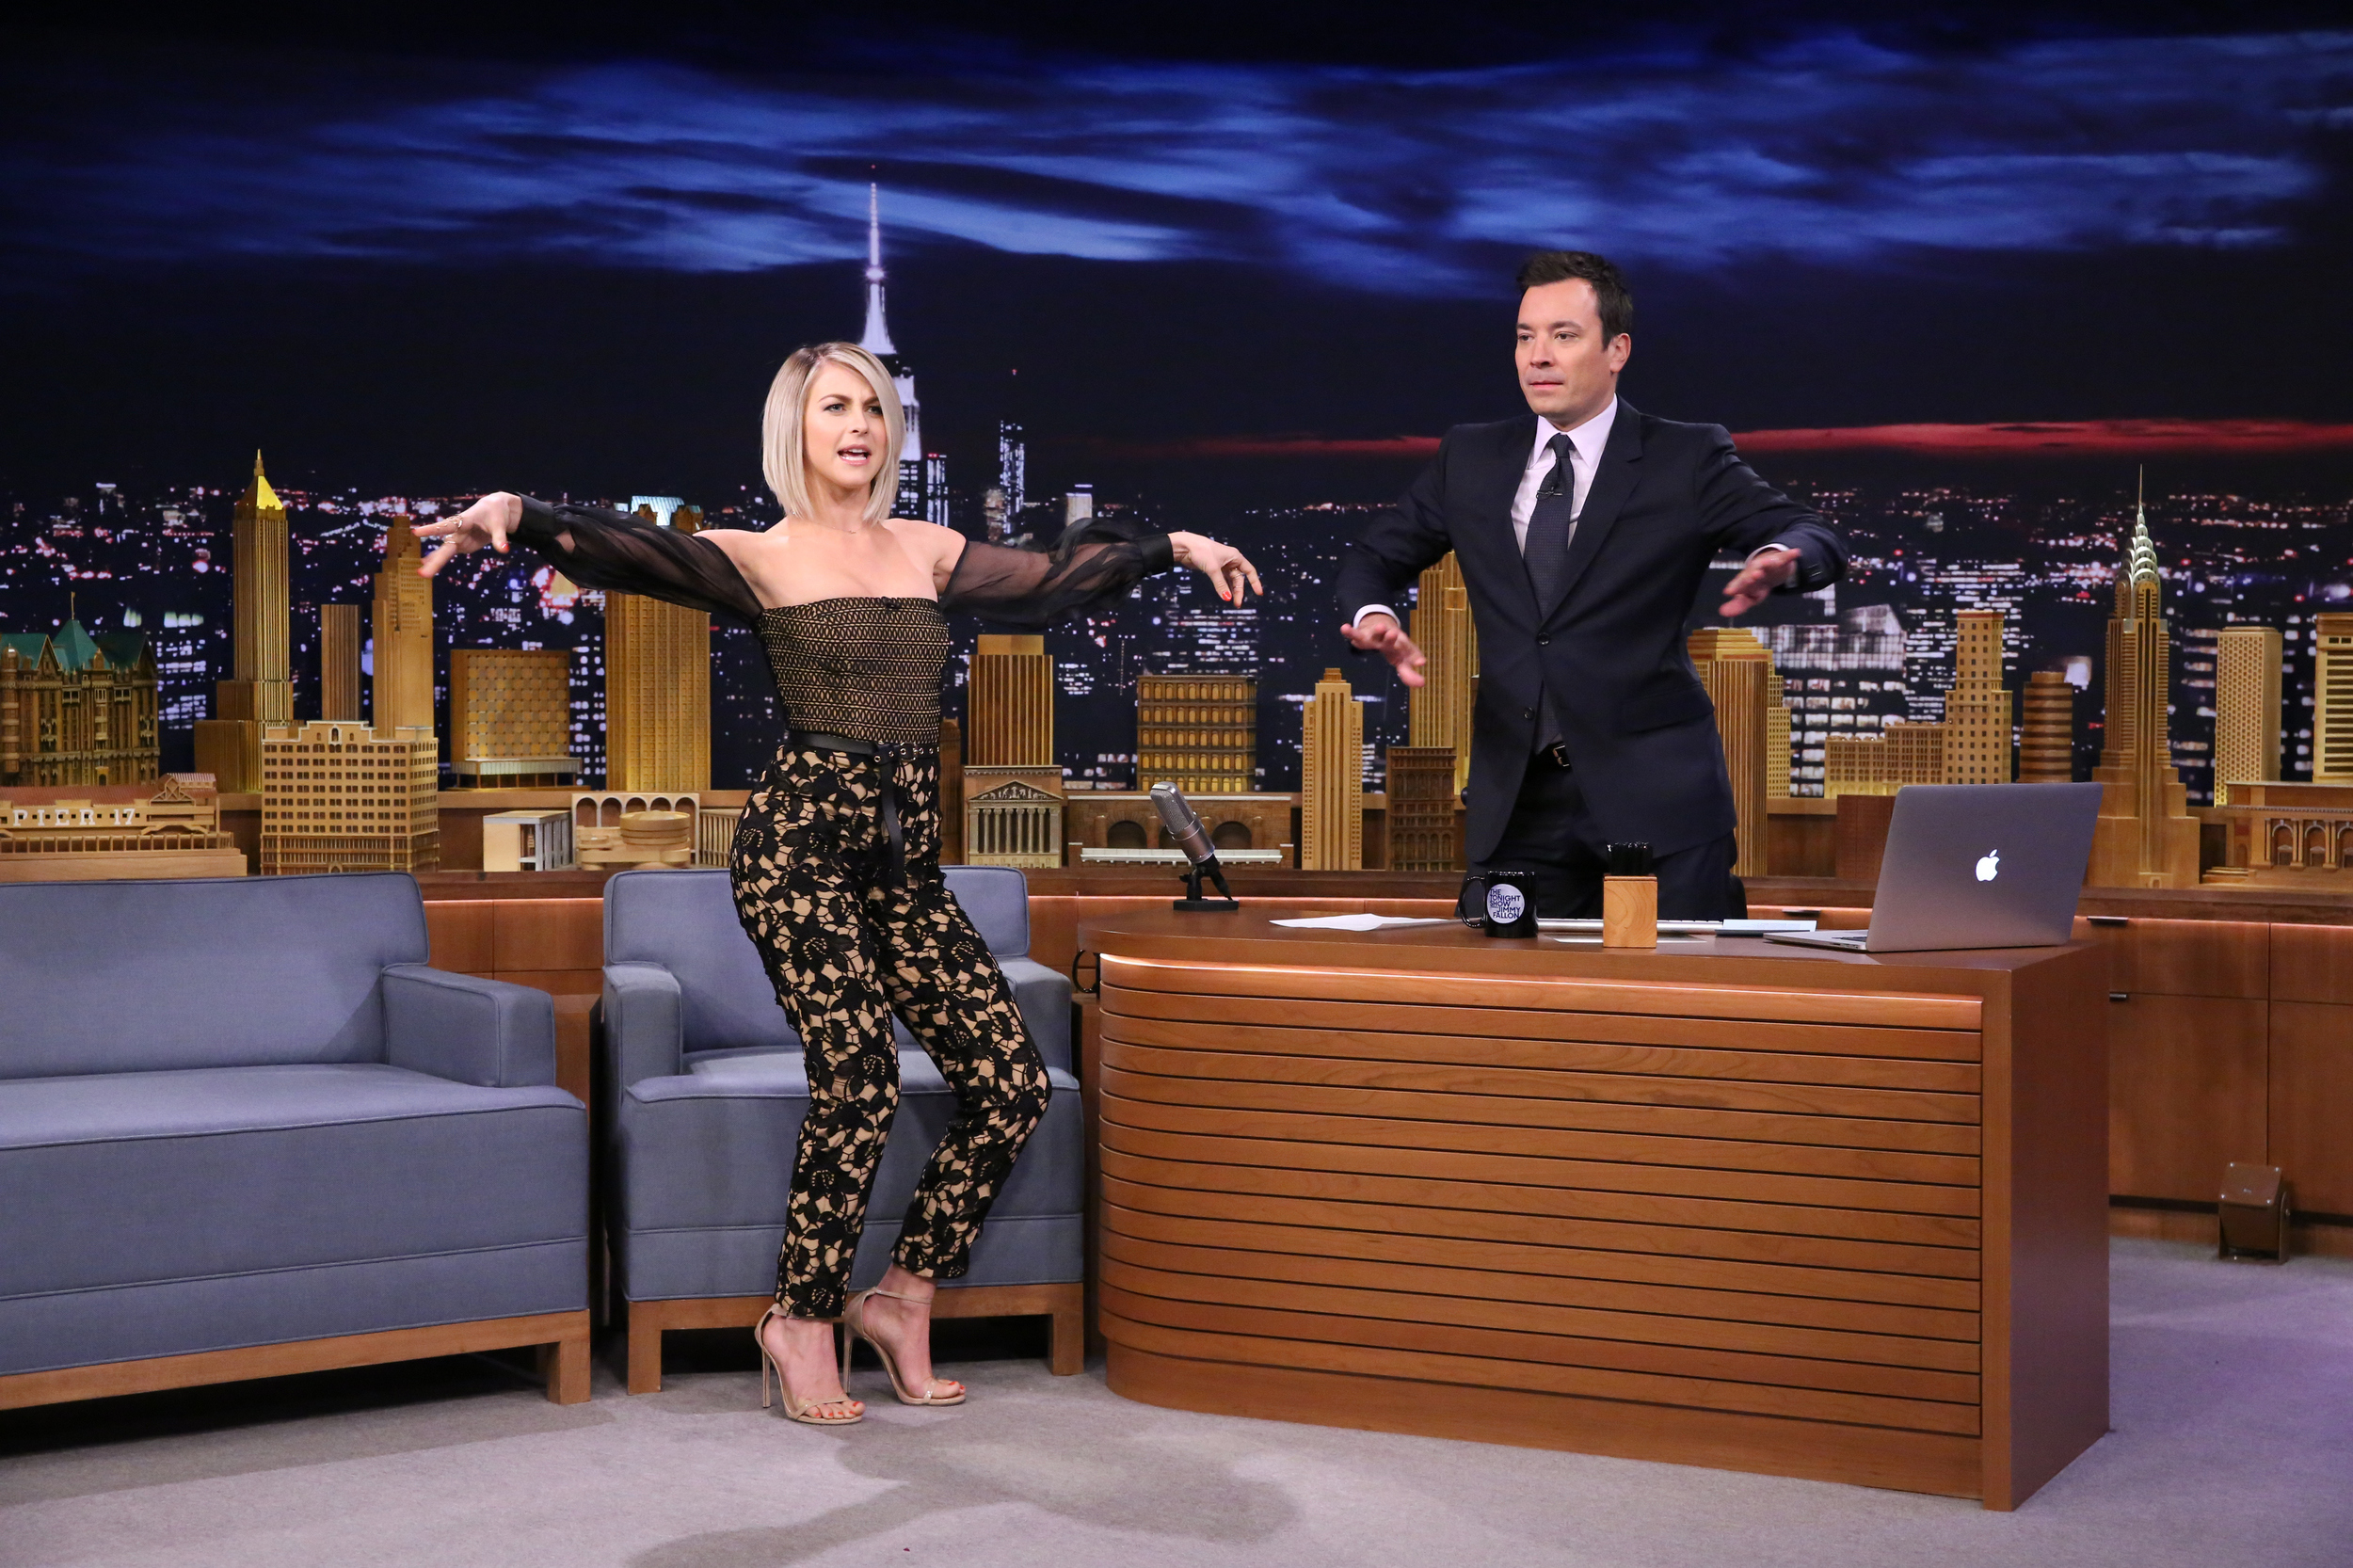 Id Theft Protection >> Julianne Hough reveals her go-to dance move on the 'Tonight Show' - AOL Entertainment